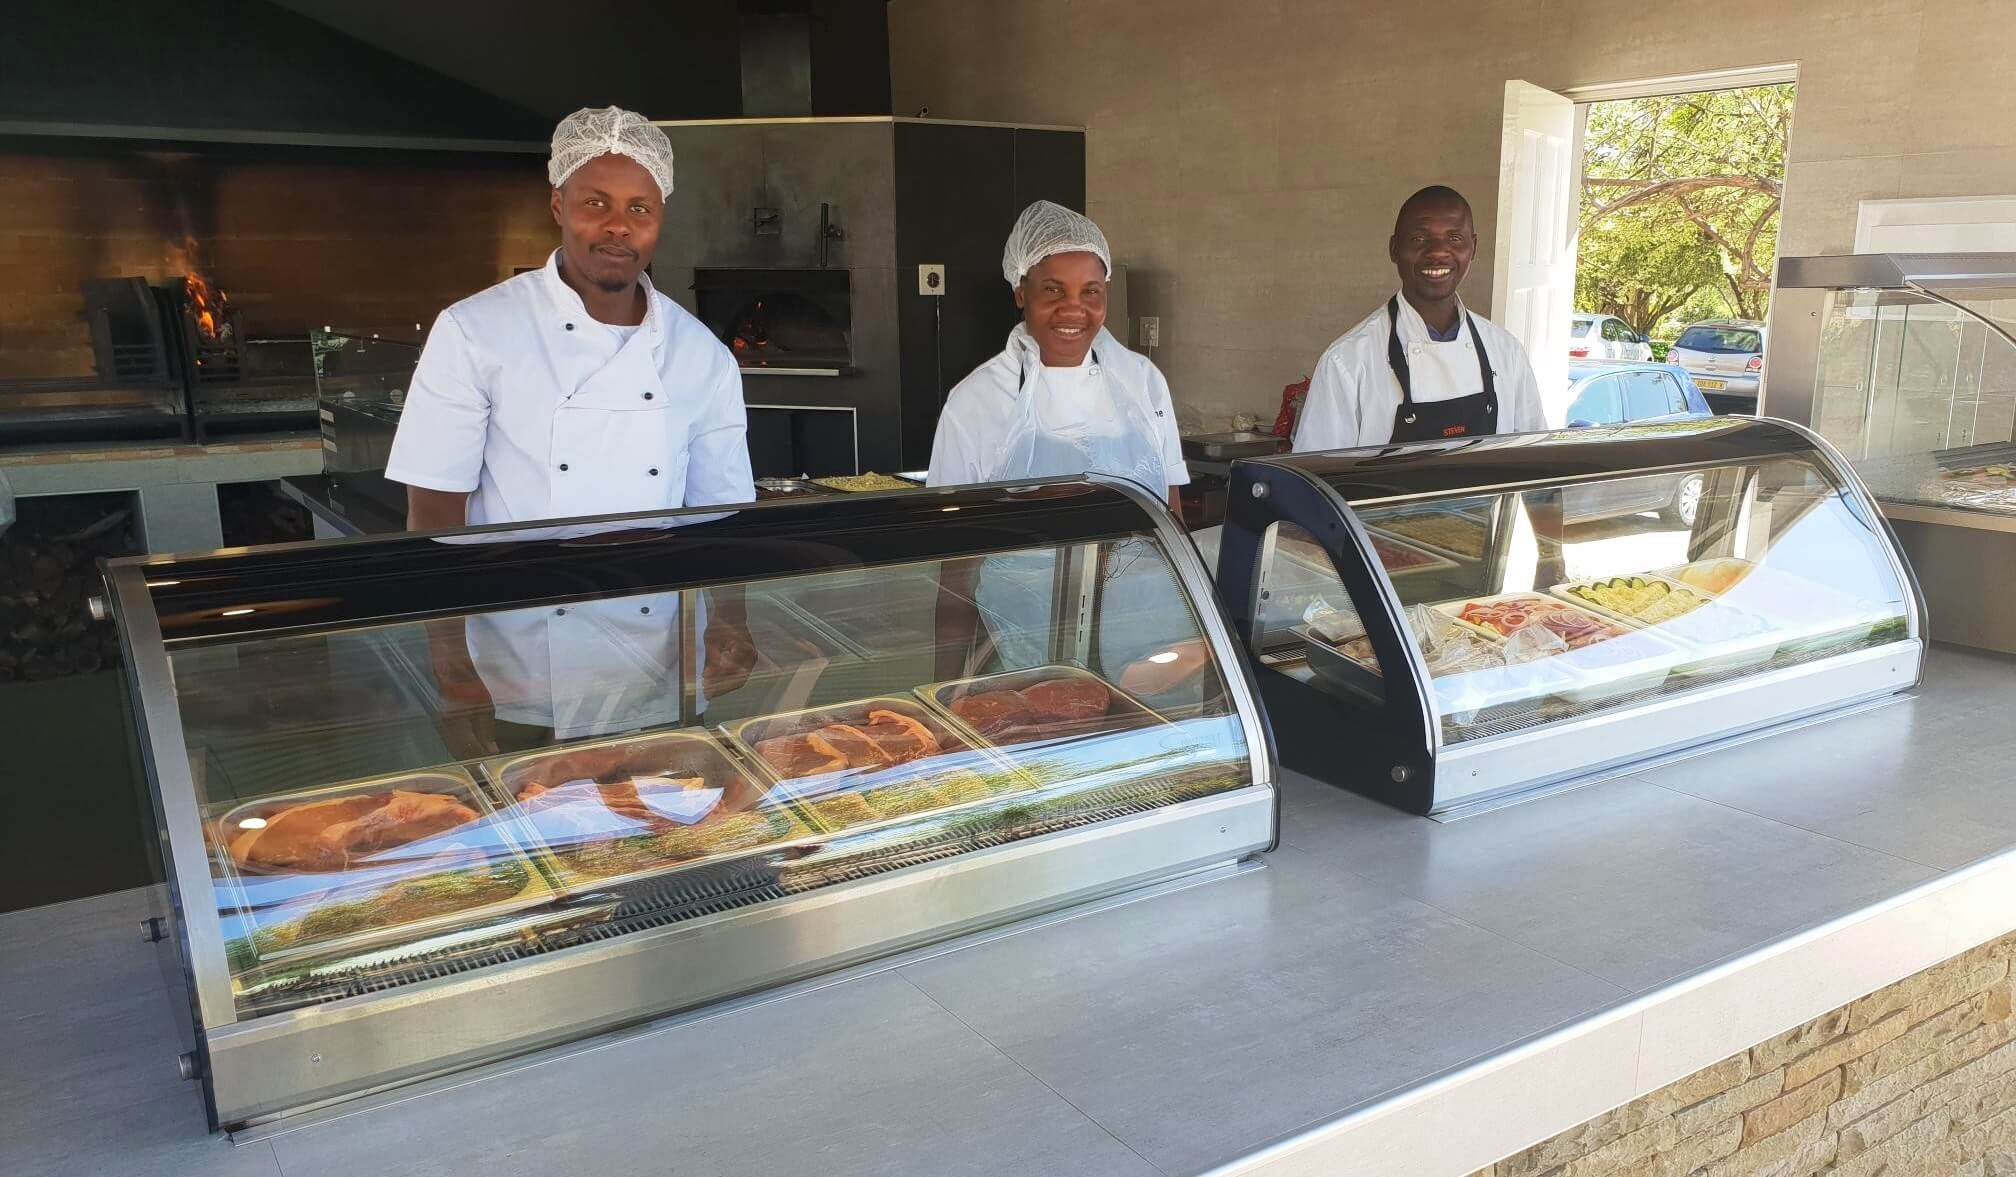 Arebbusch Travel Lodge Pizzeria & Grill | Pizzeria & Grill in Windhoek, Namibia